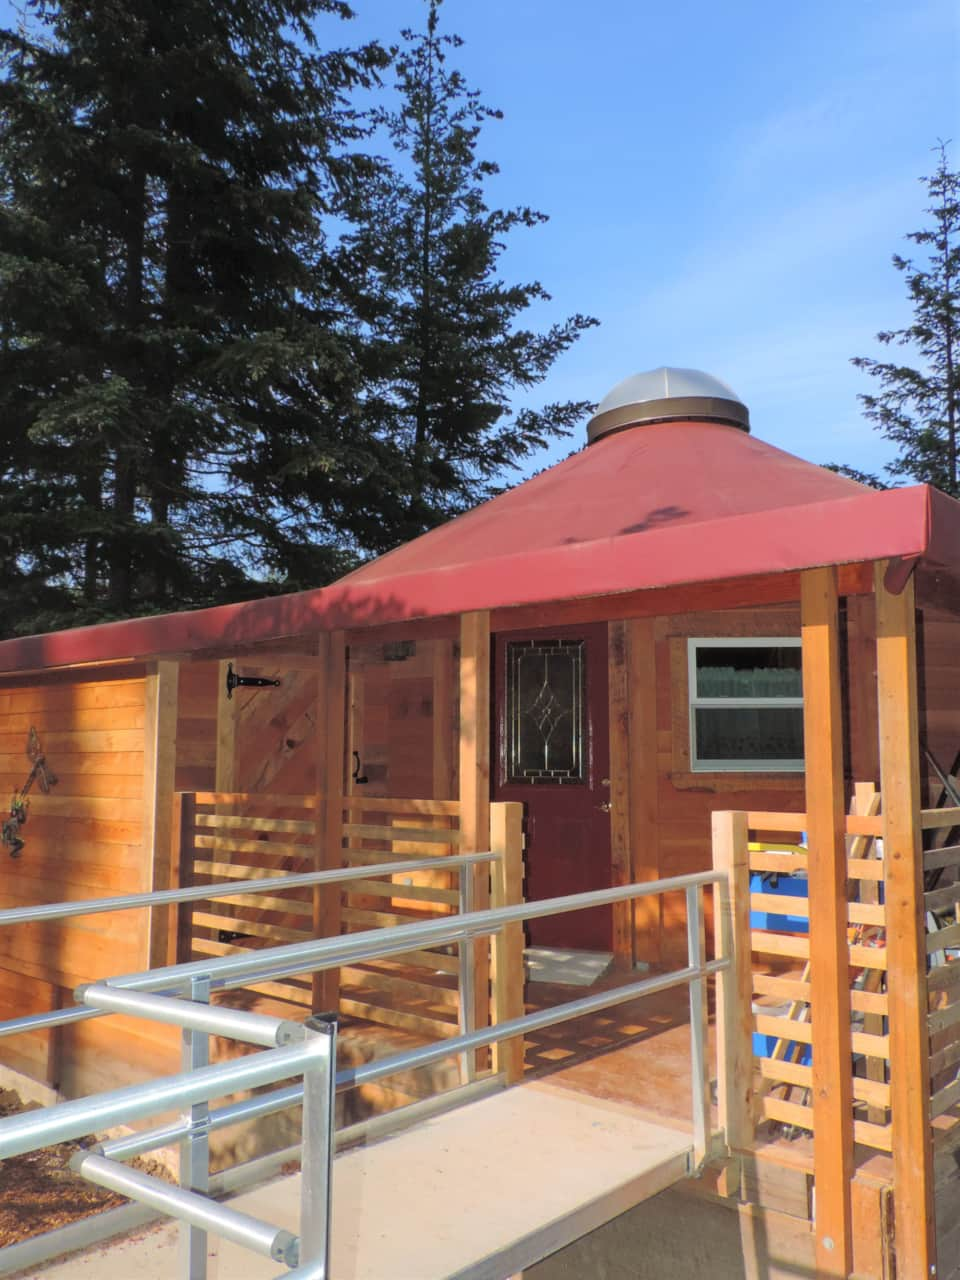 The Yurt at Rivendell Vacation Rental - Vacation Home in White Salmon